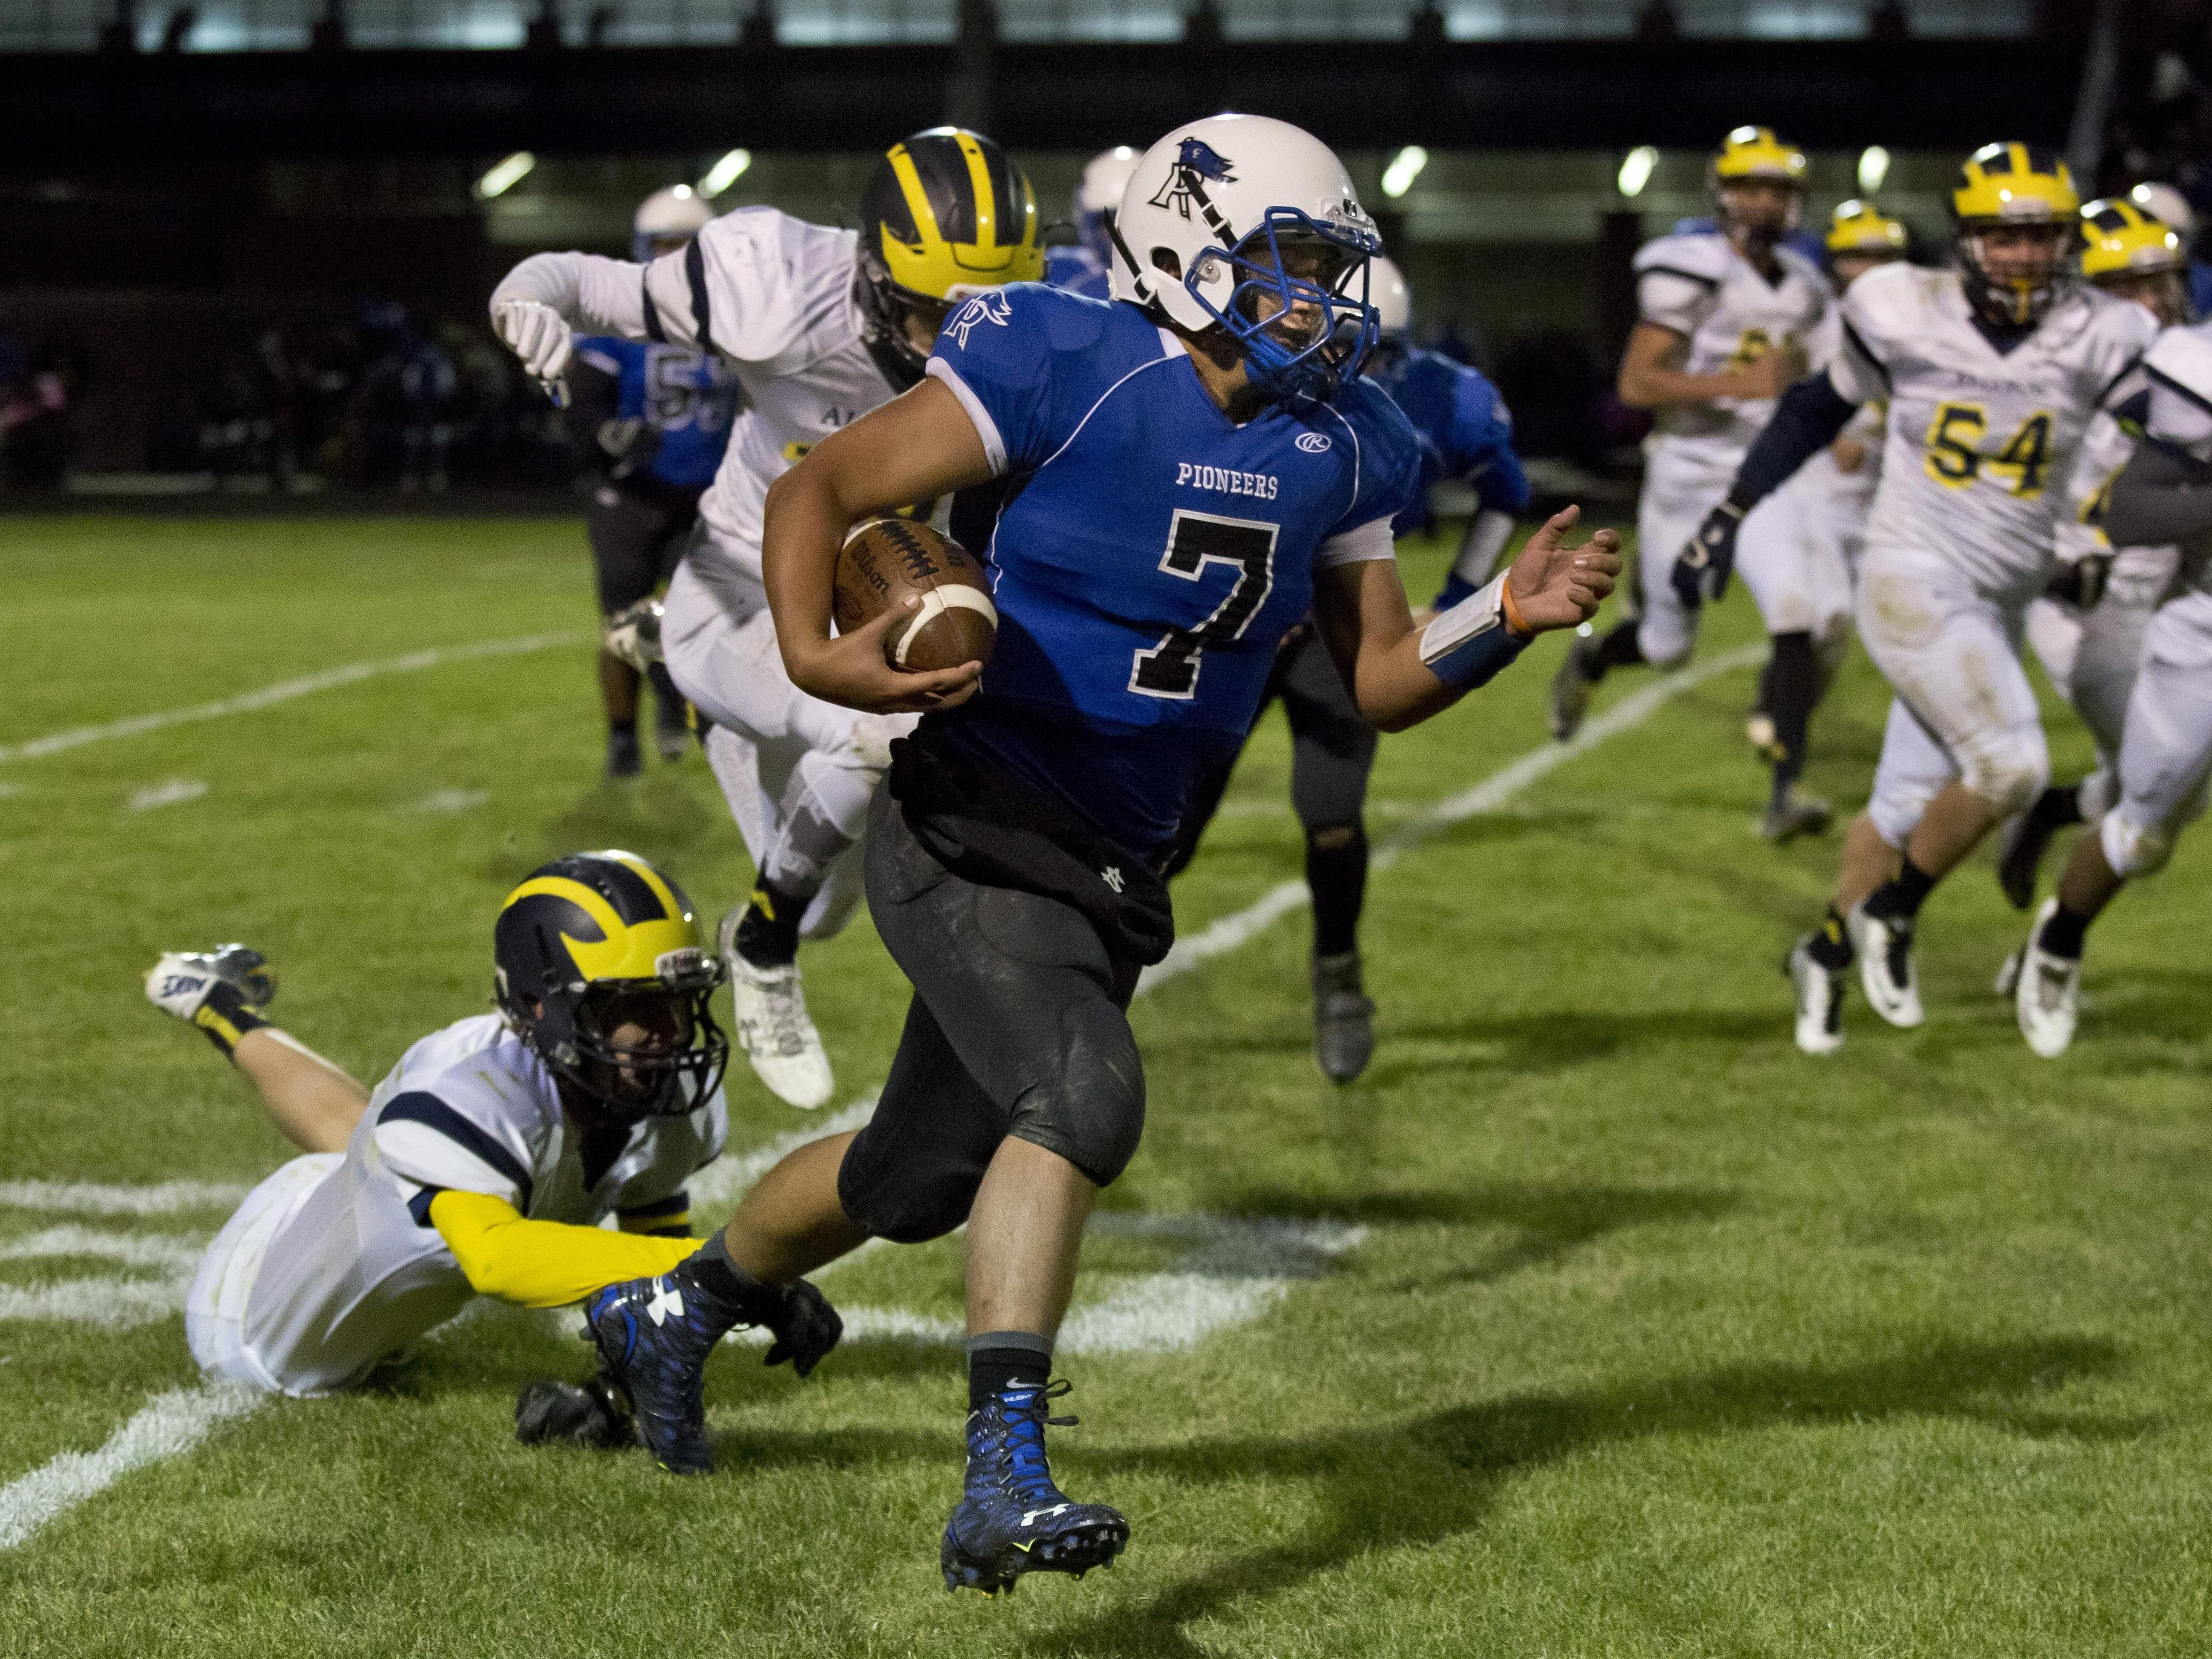 Cros-Lex's Justin Johnston runs the ball and breaks several Algonac tackles during a football game Friday, October 2, 2015 at Croswell-Lexington High School.